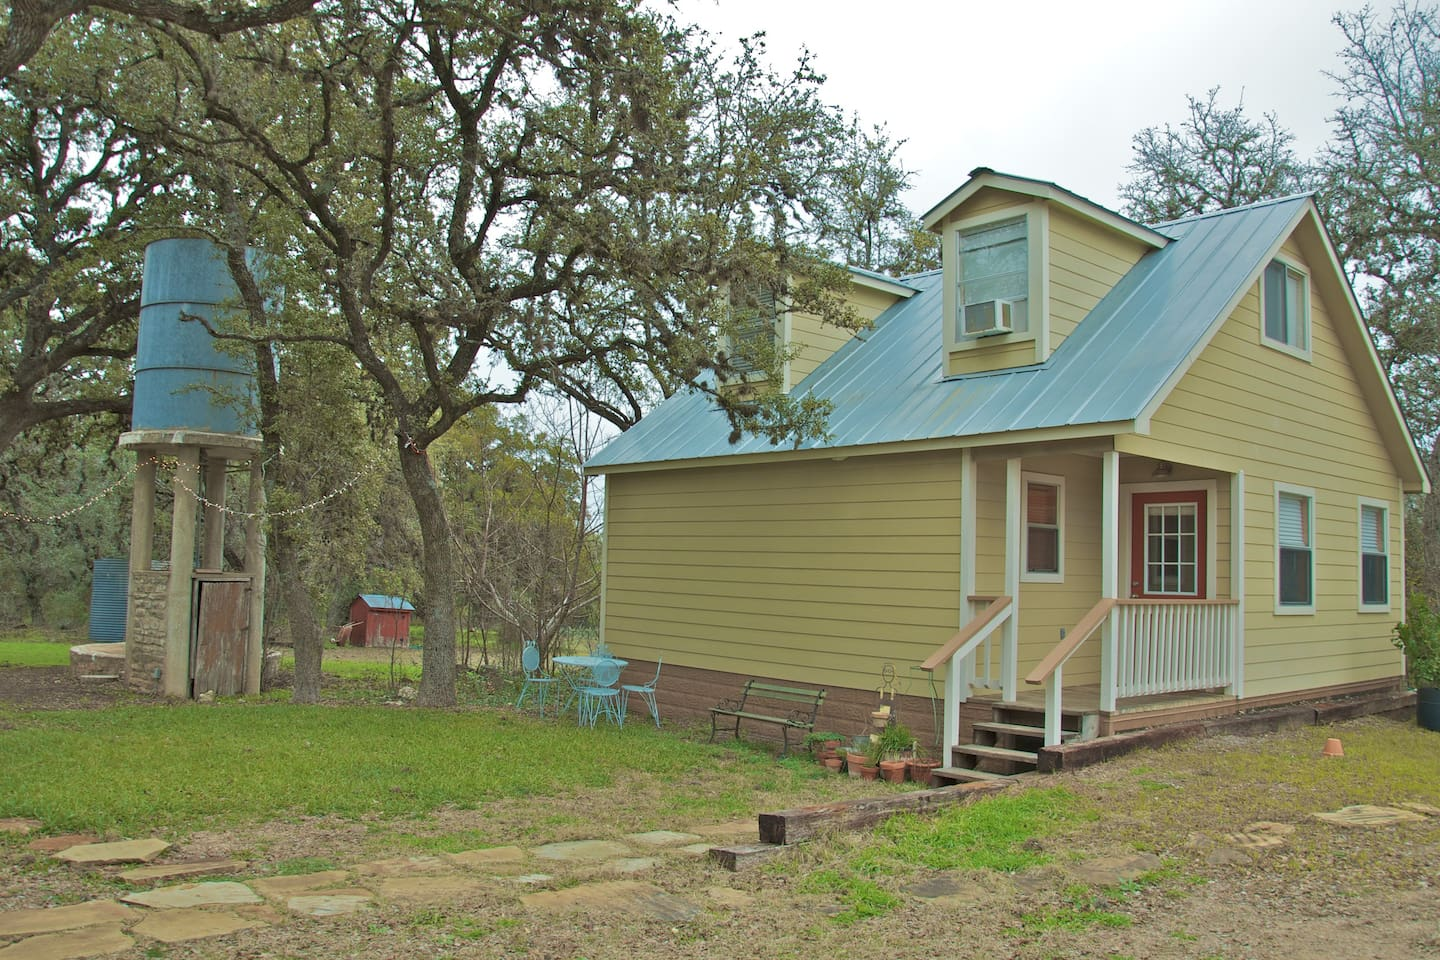 cottages rental the coffee cedar cottage get wimberley vacation for deck in morning away hill your covered country